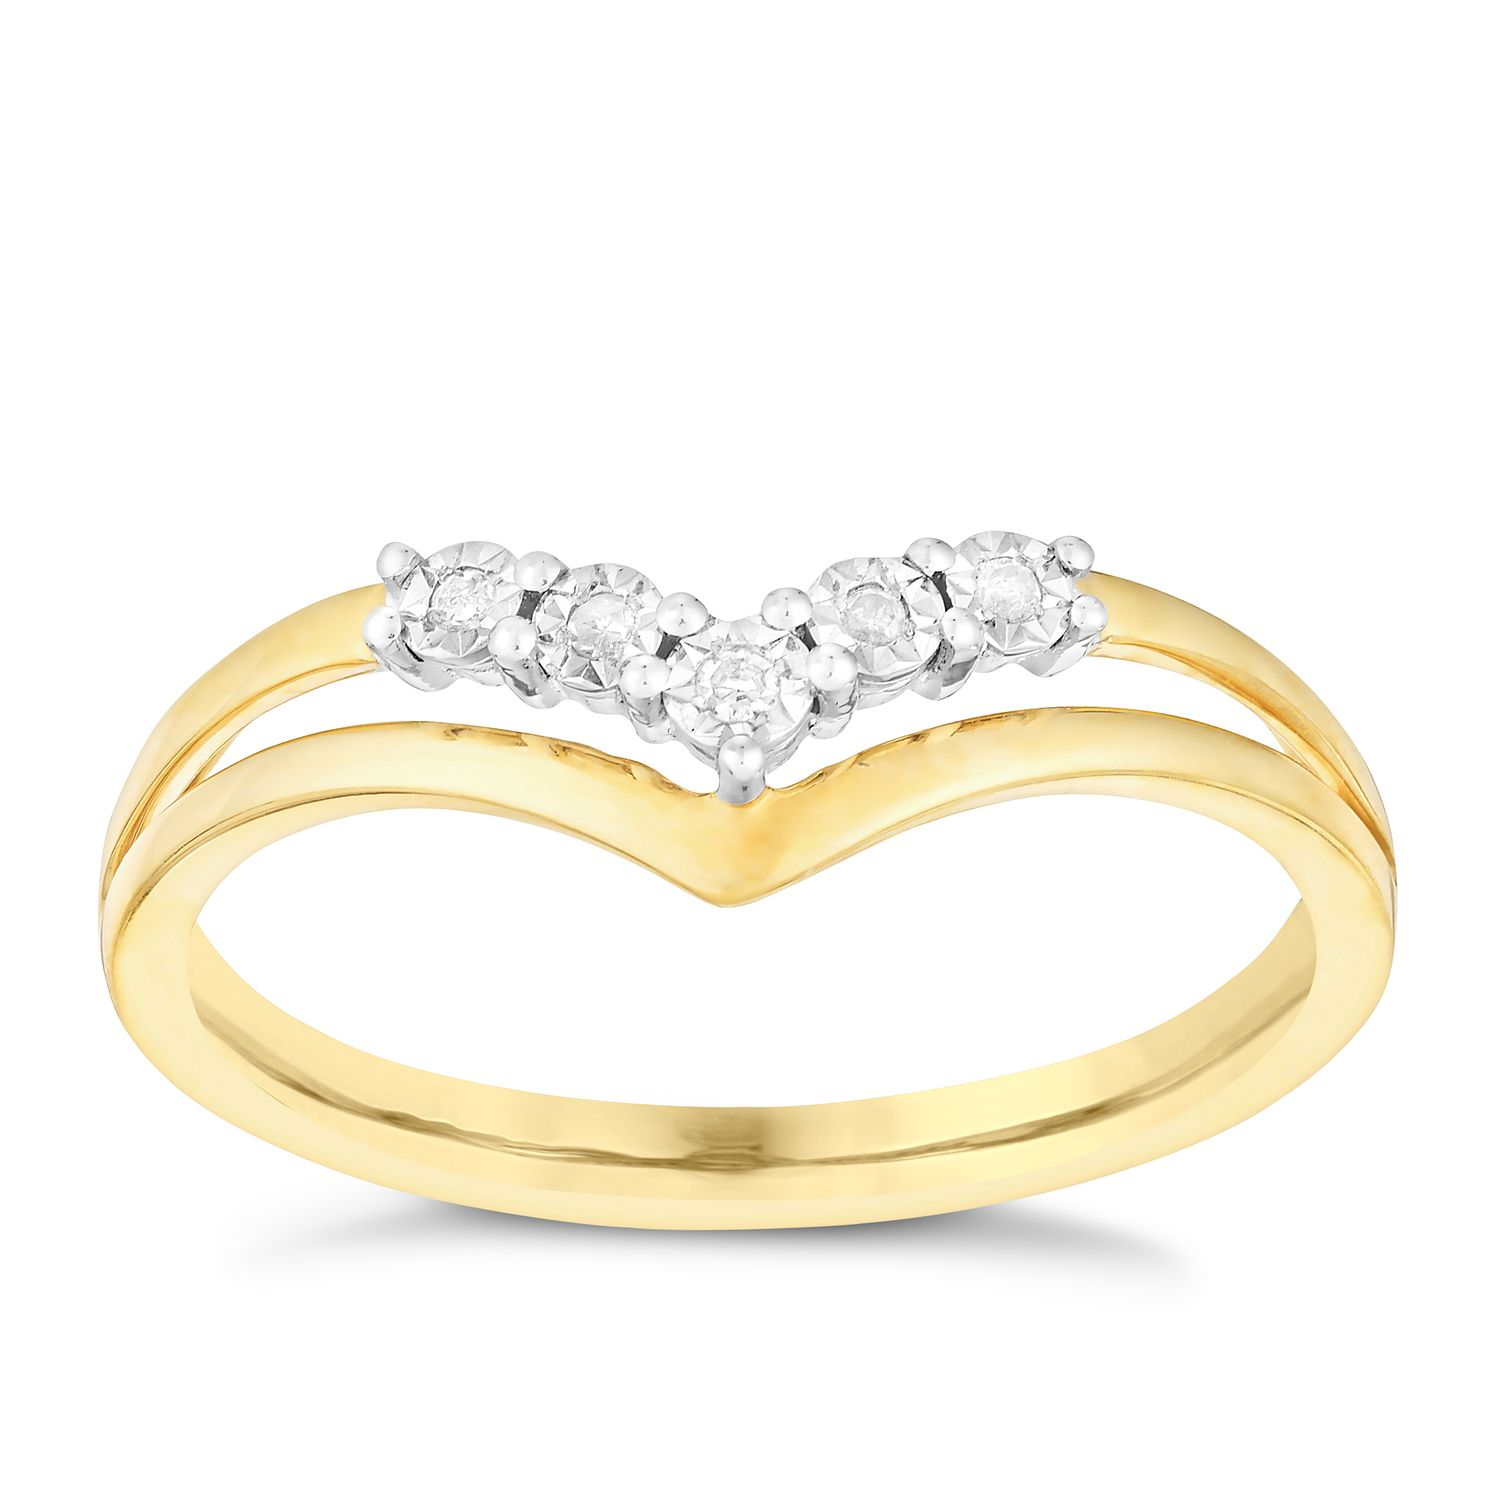 goldheart rings eboutique jewellery diamond eternity ring half